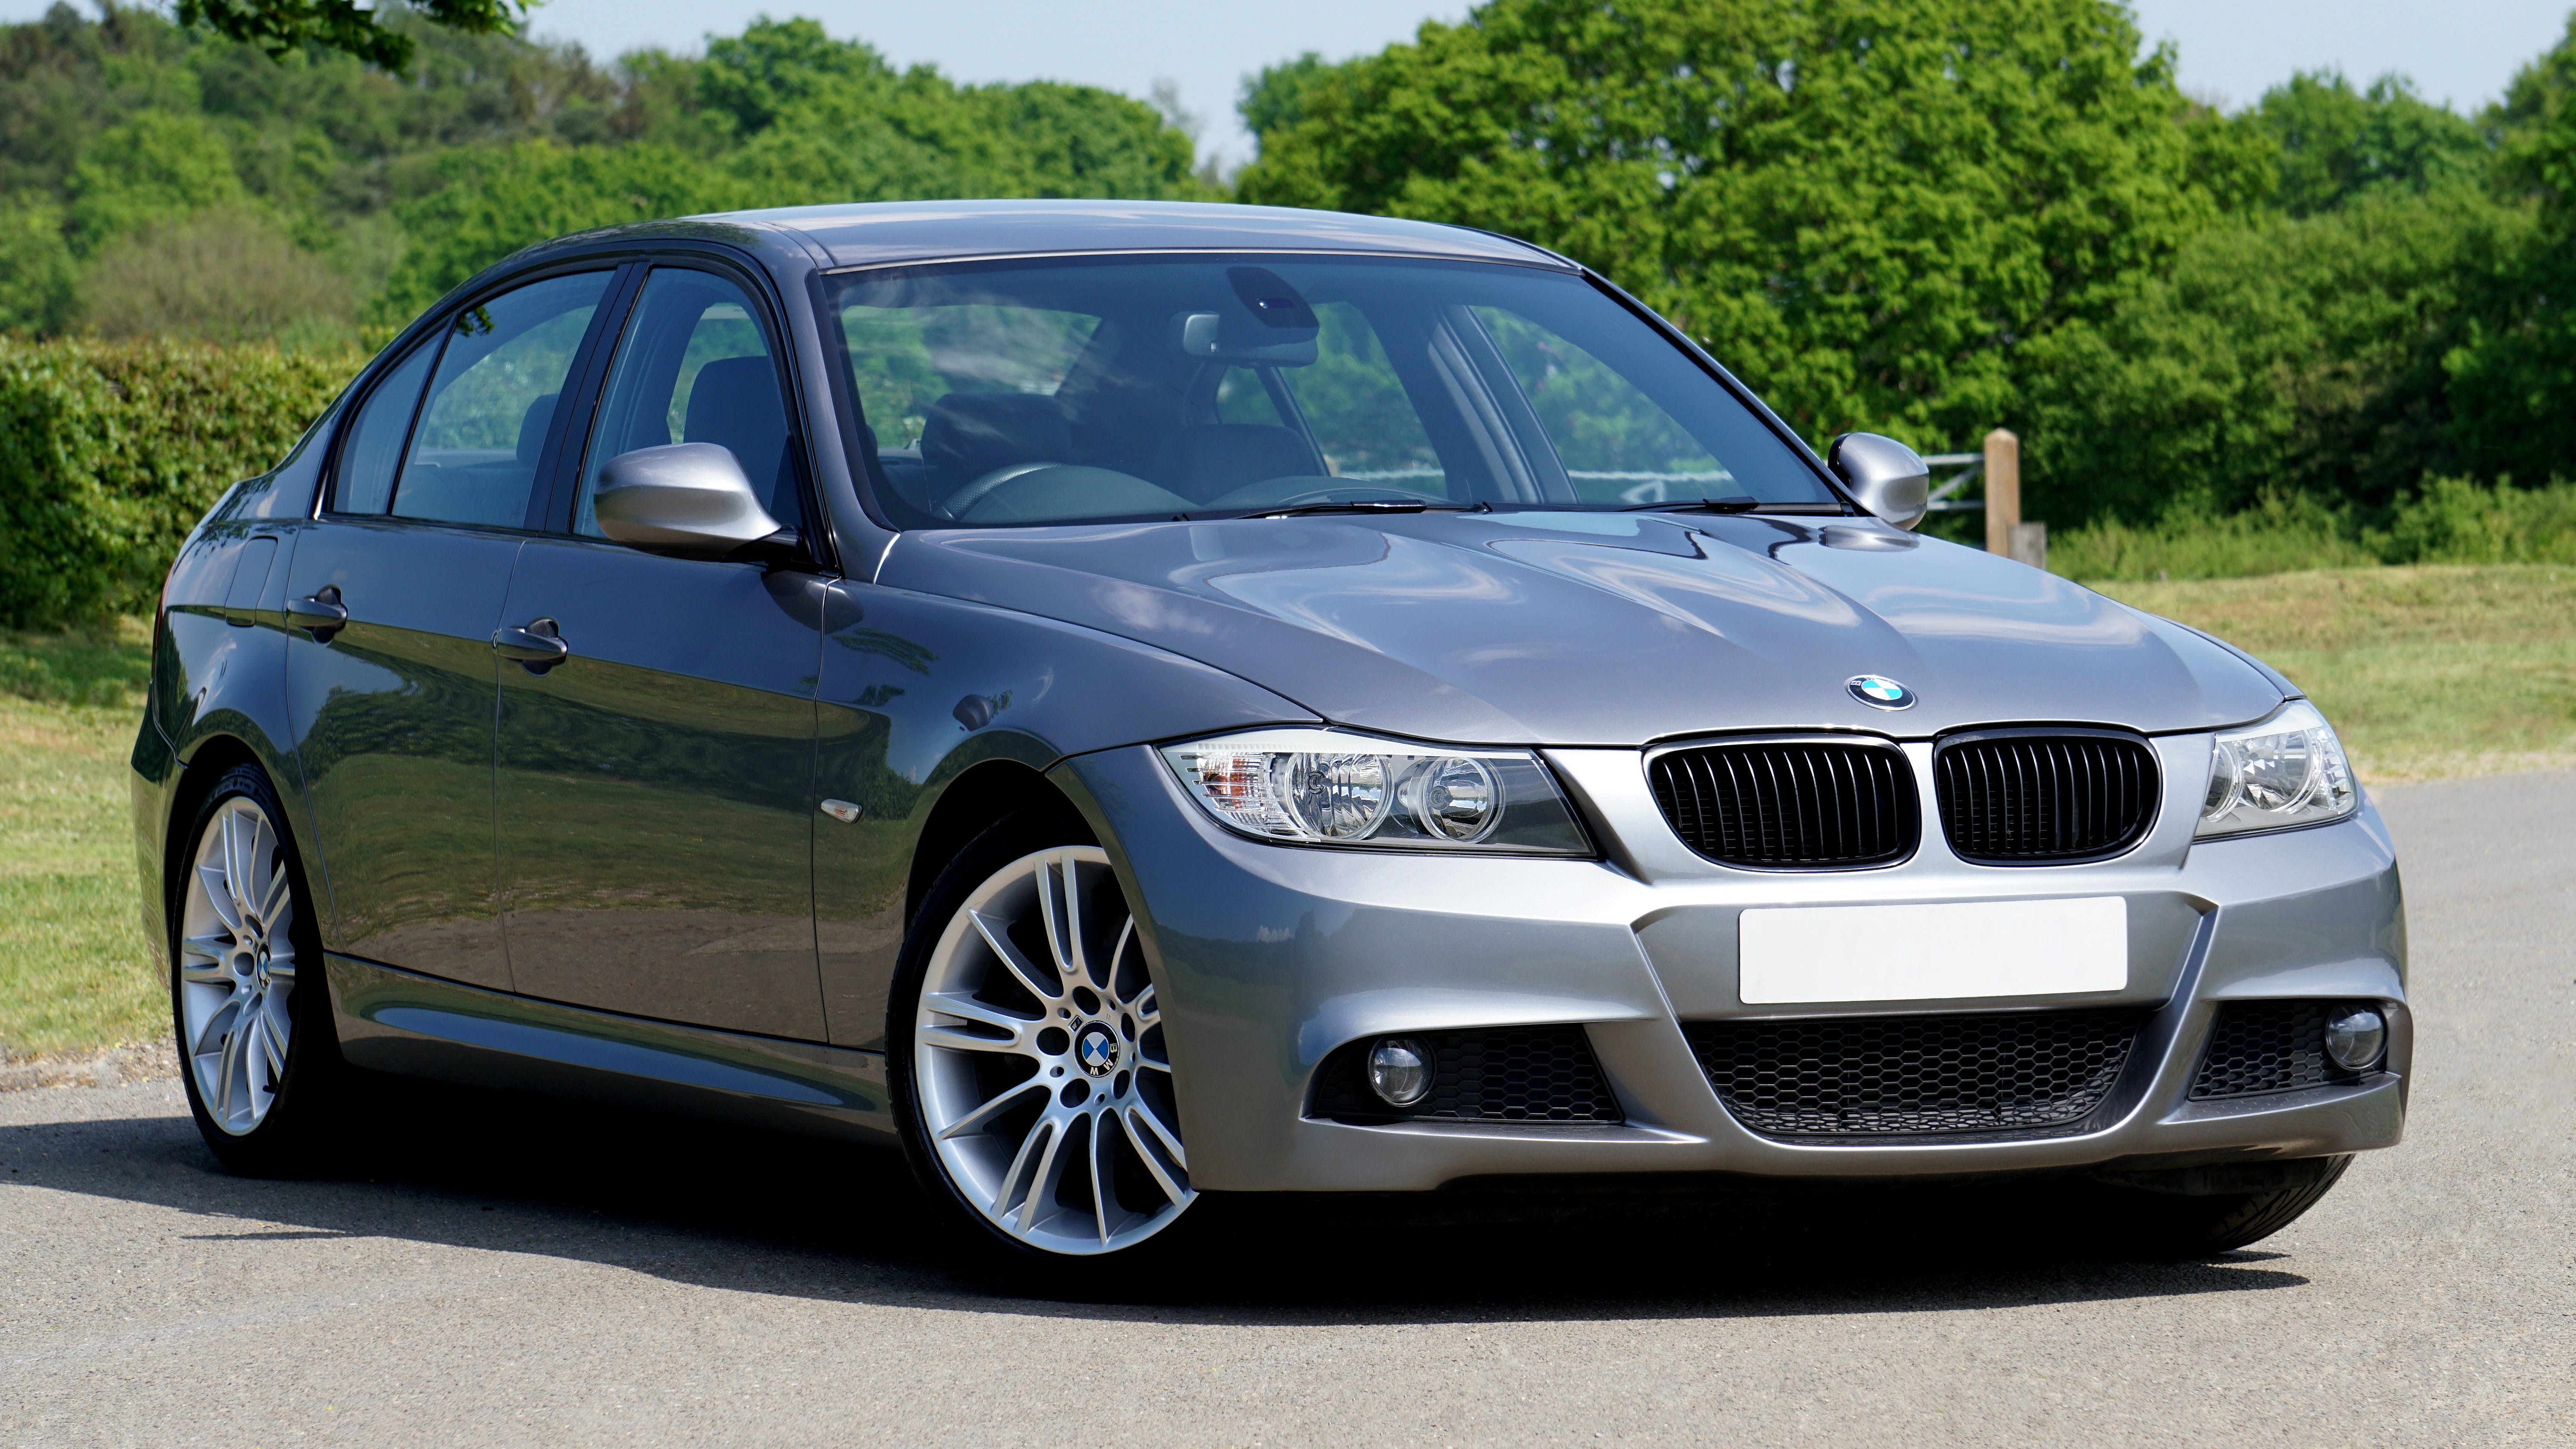 Free stock photo of 3 Series, 325d, Alloy Wheels, BMW